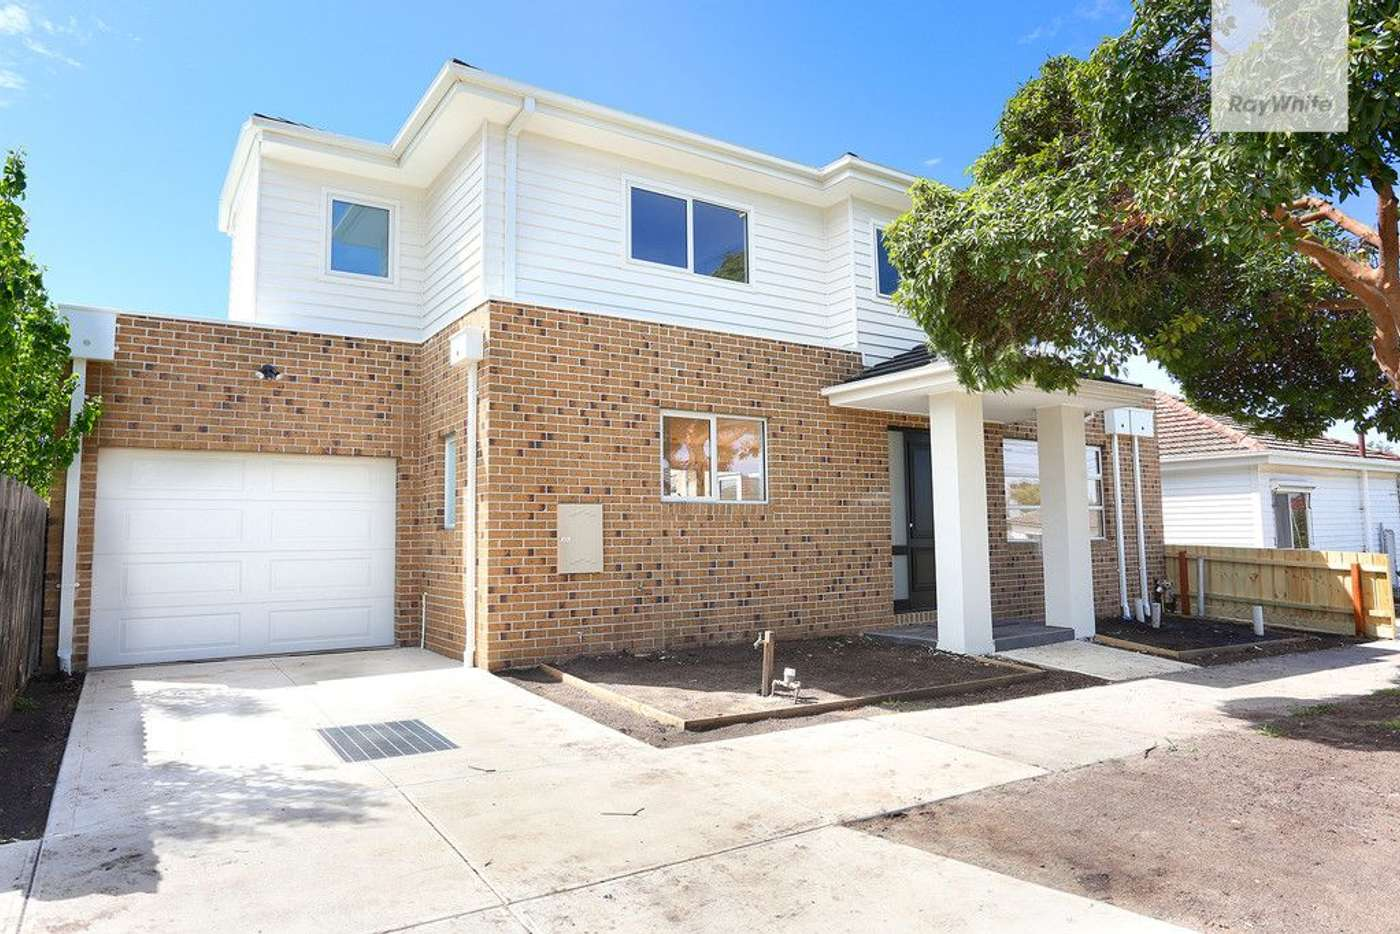 Main view of Homely house listing, 2A Colthur Street, Reservoir VIC 3073